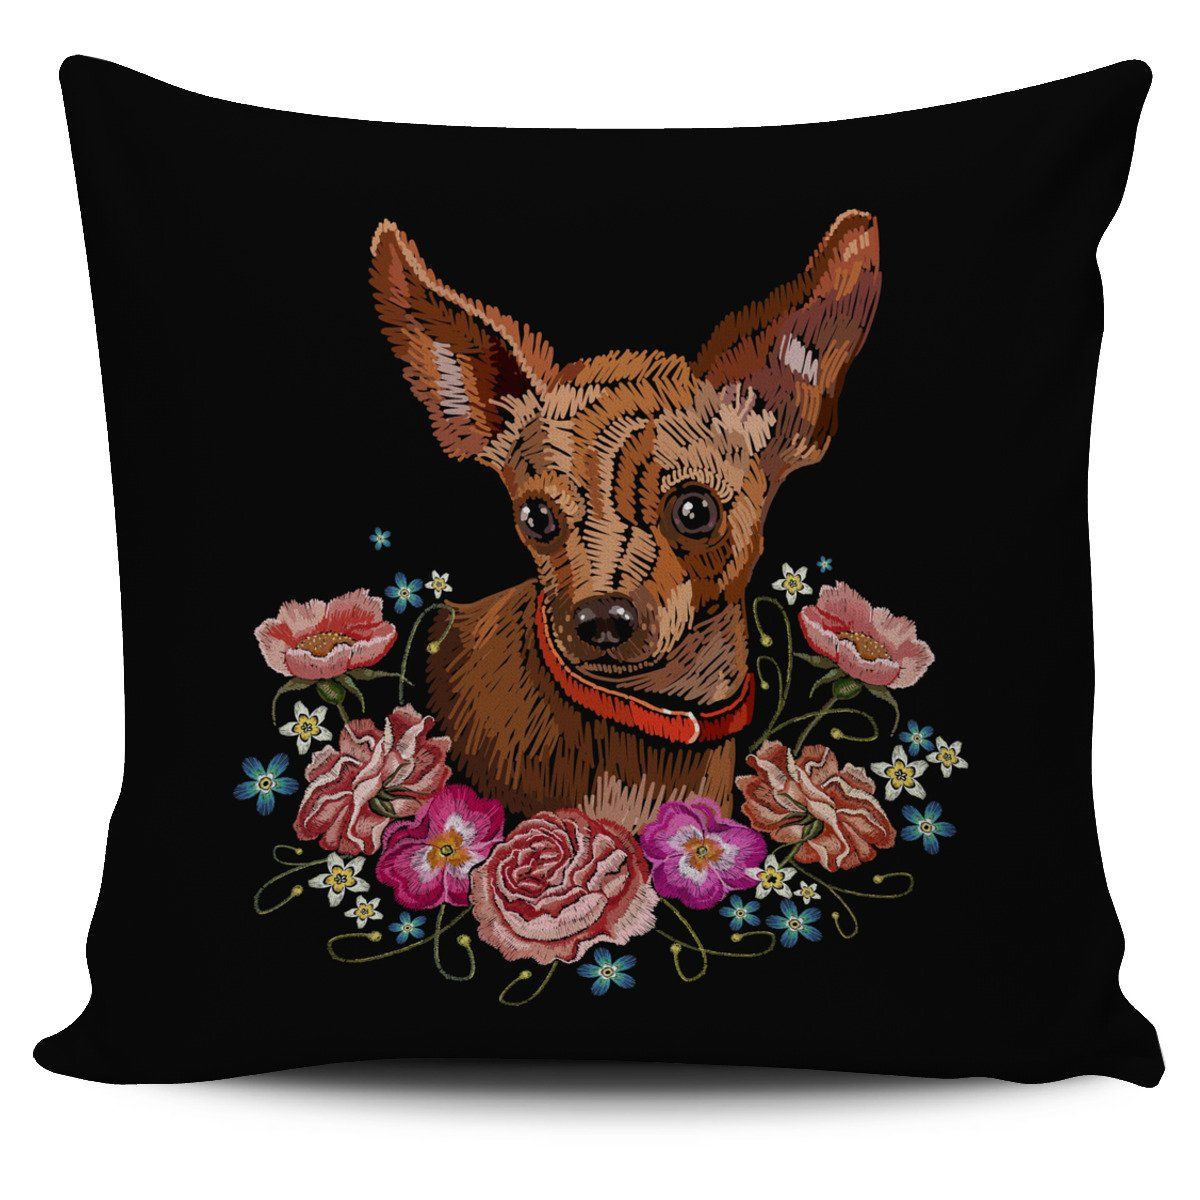 Embroidery Chihuahua Pillow Cover Pillow covers